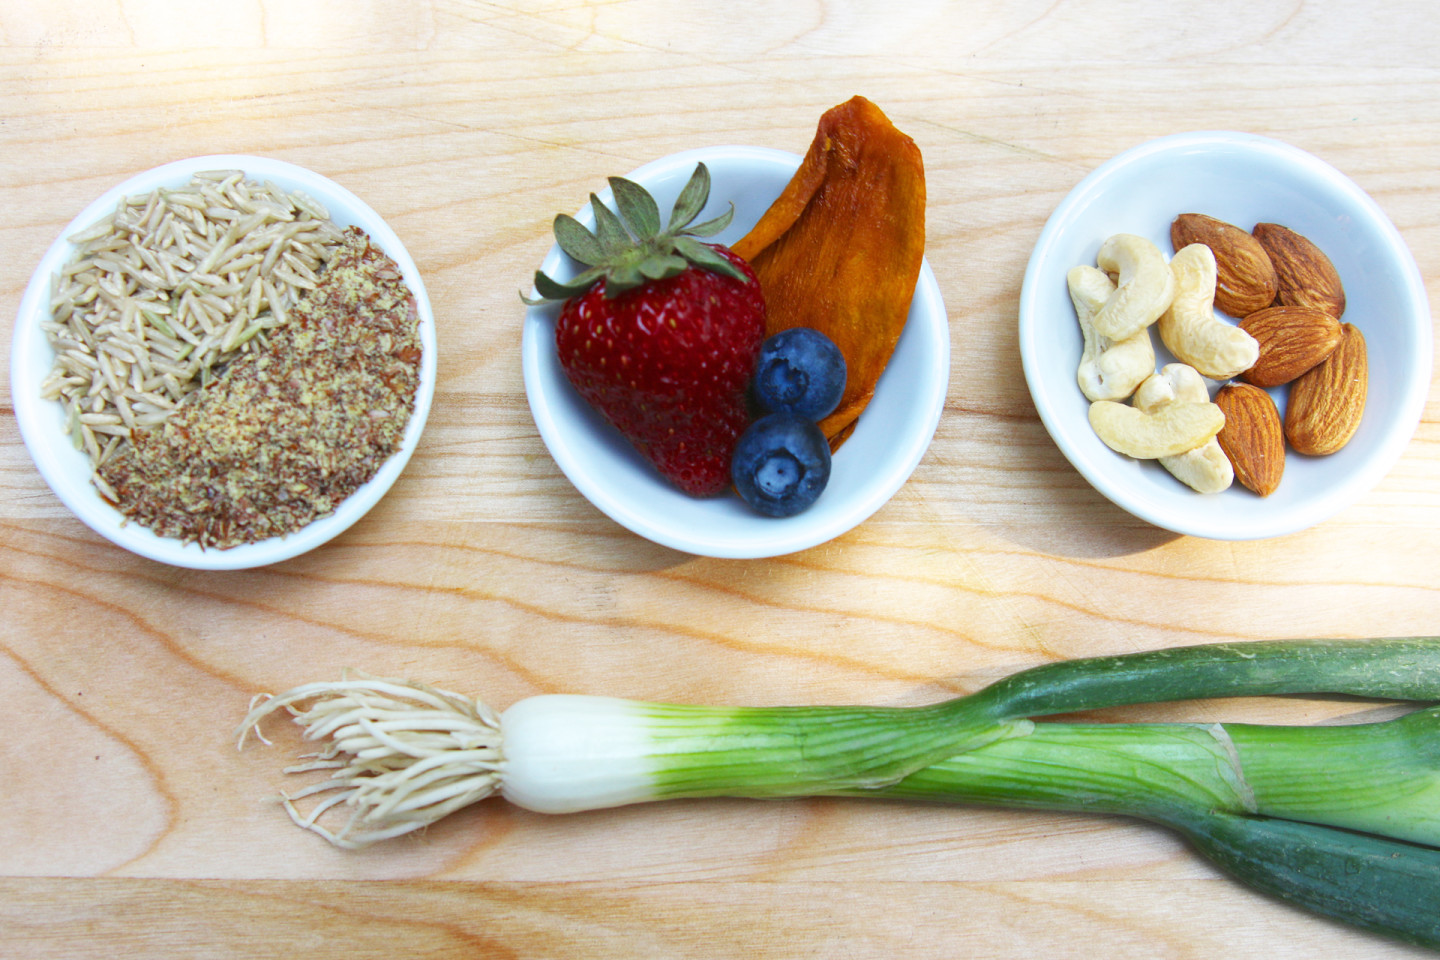 Food Storage Tips: 9 Foods That Fare Better in the Fridge